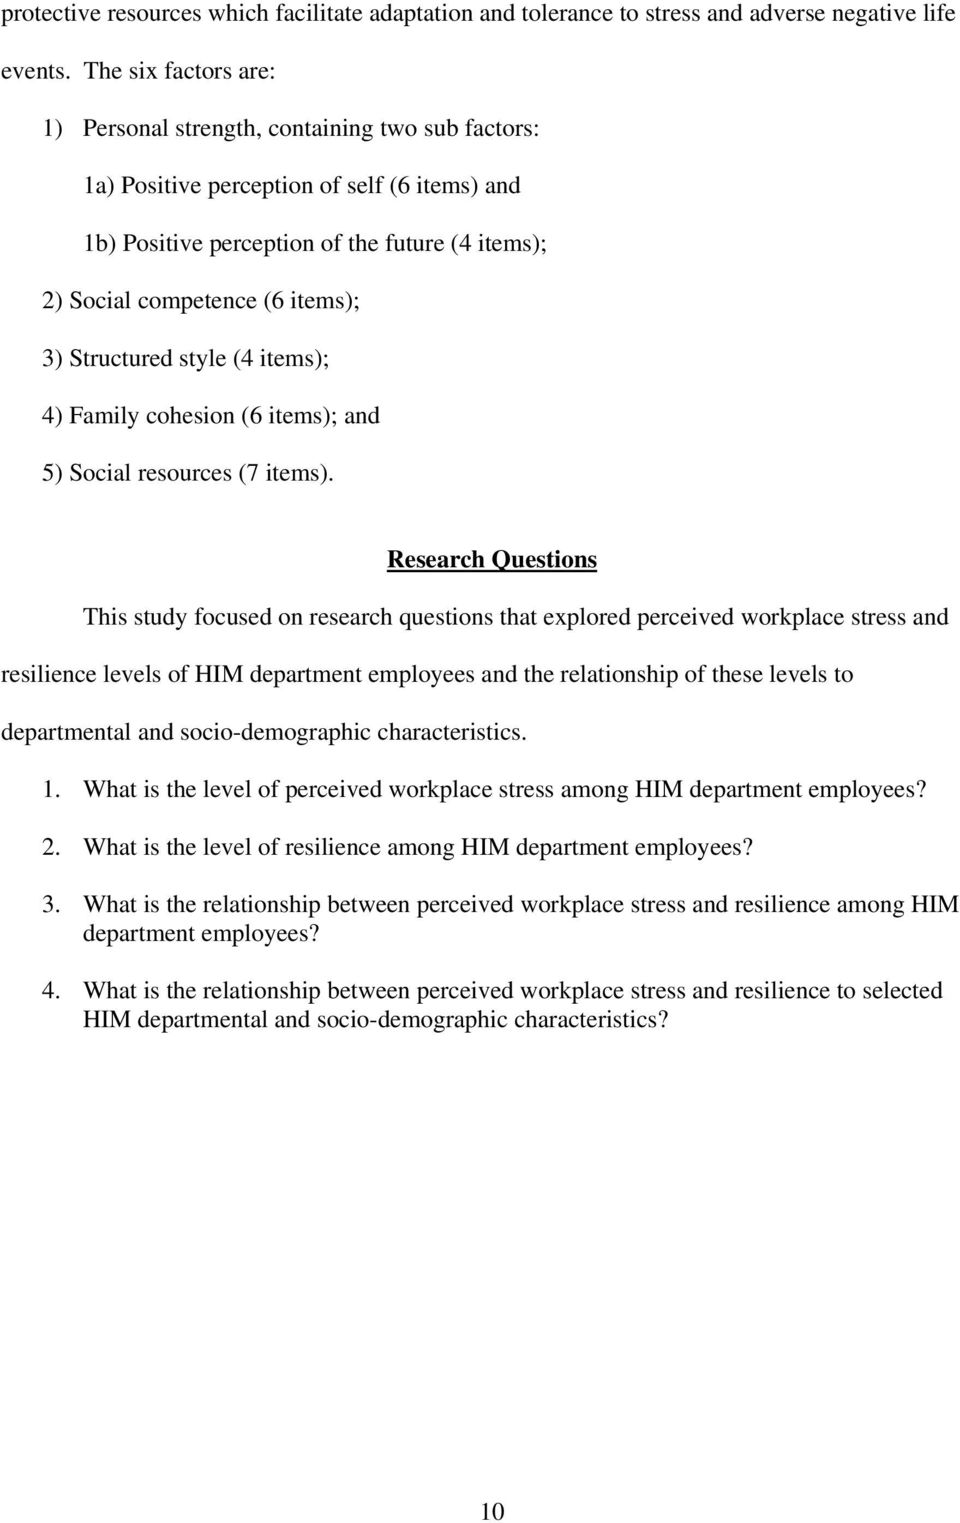 electronic medical record system thesis